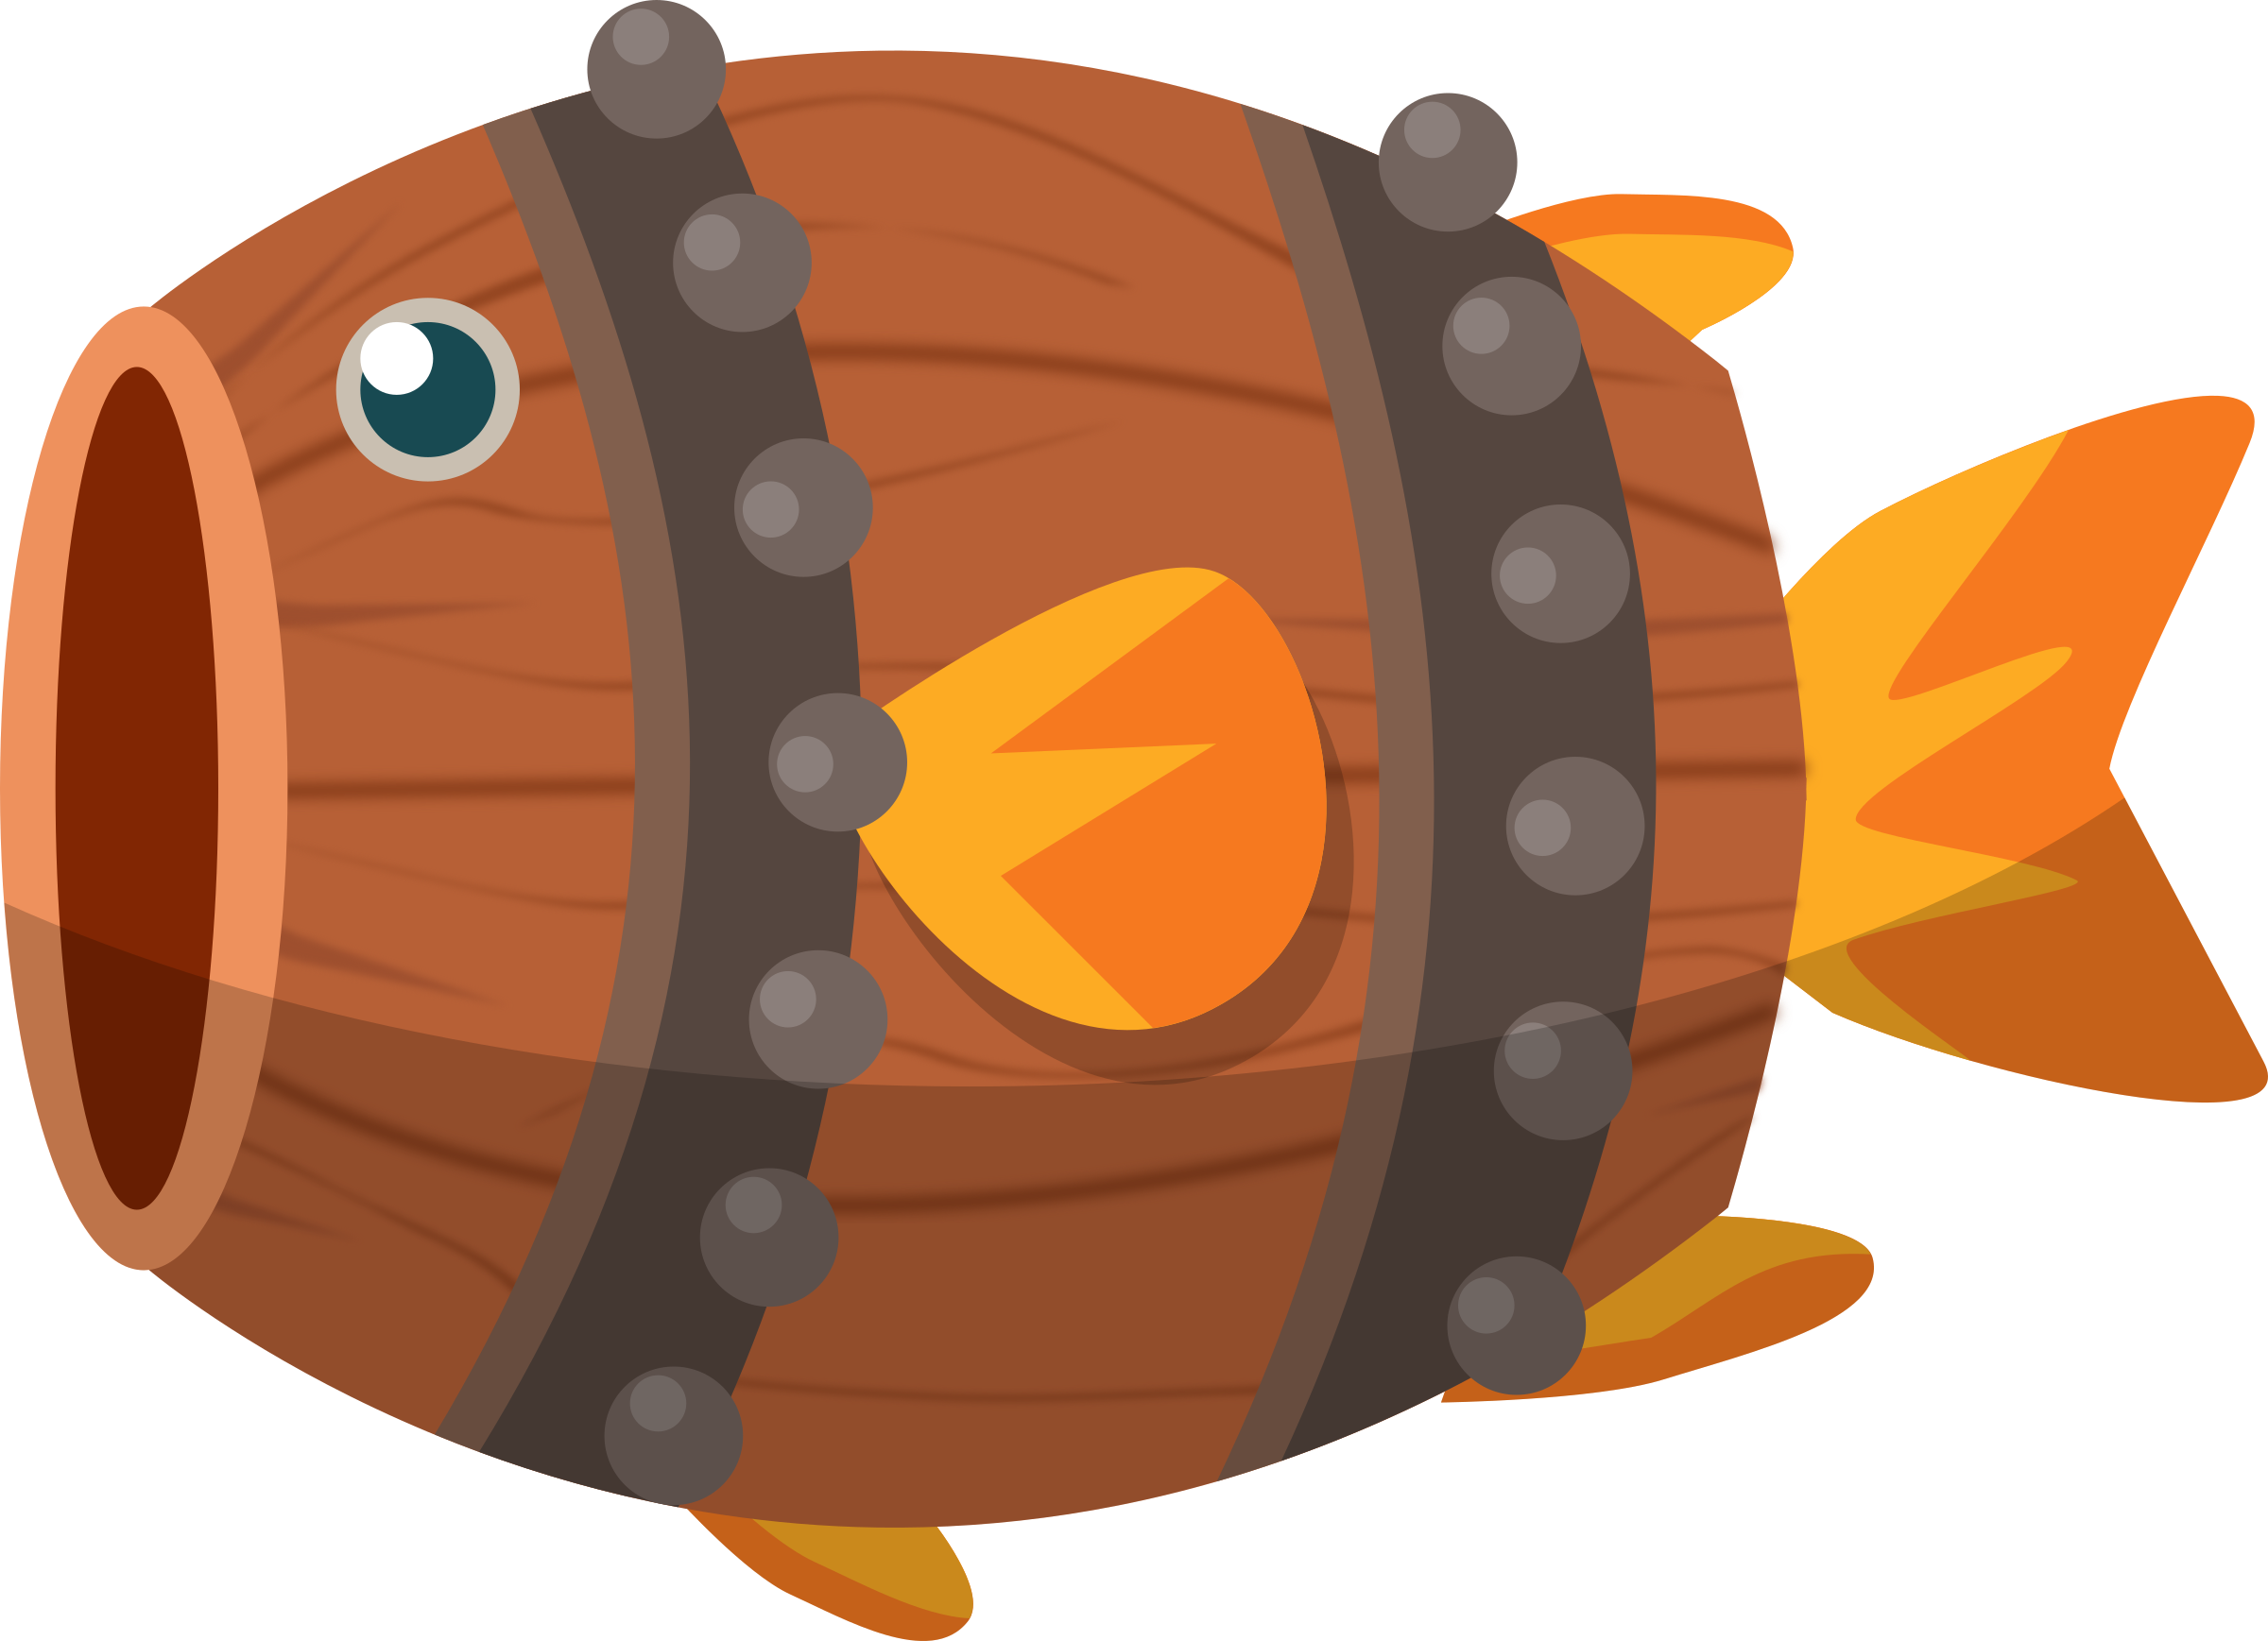 Clipart fish graphic transparent download Clipart - Barrel Fish graphic transparent download